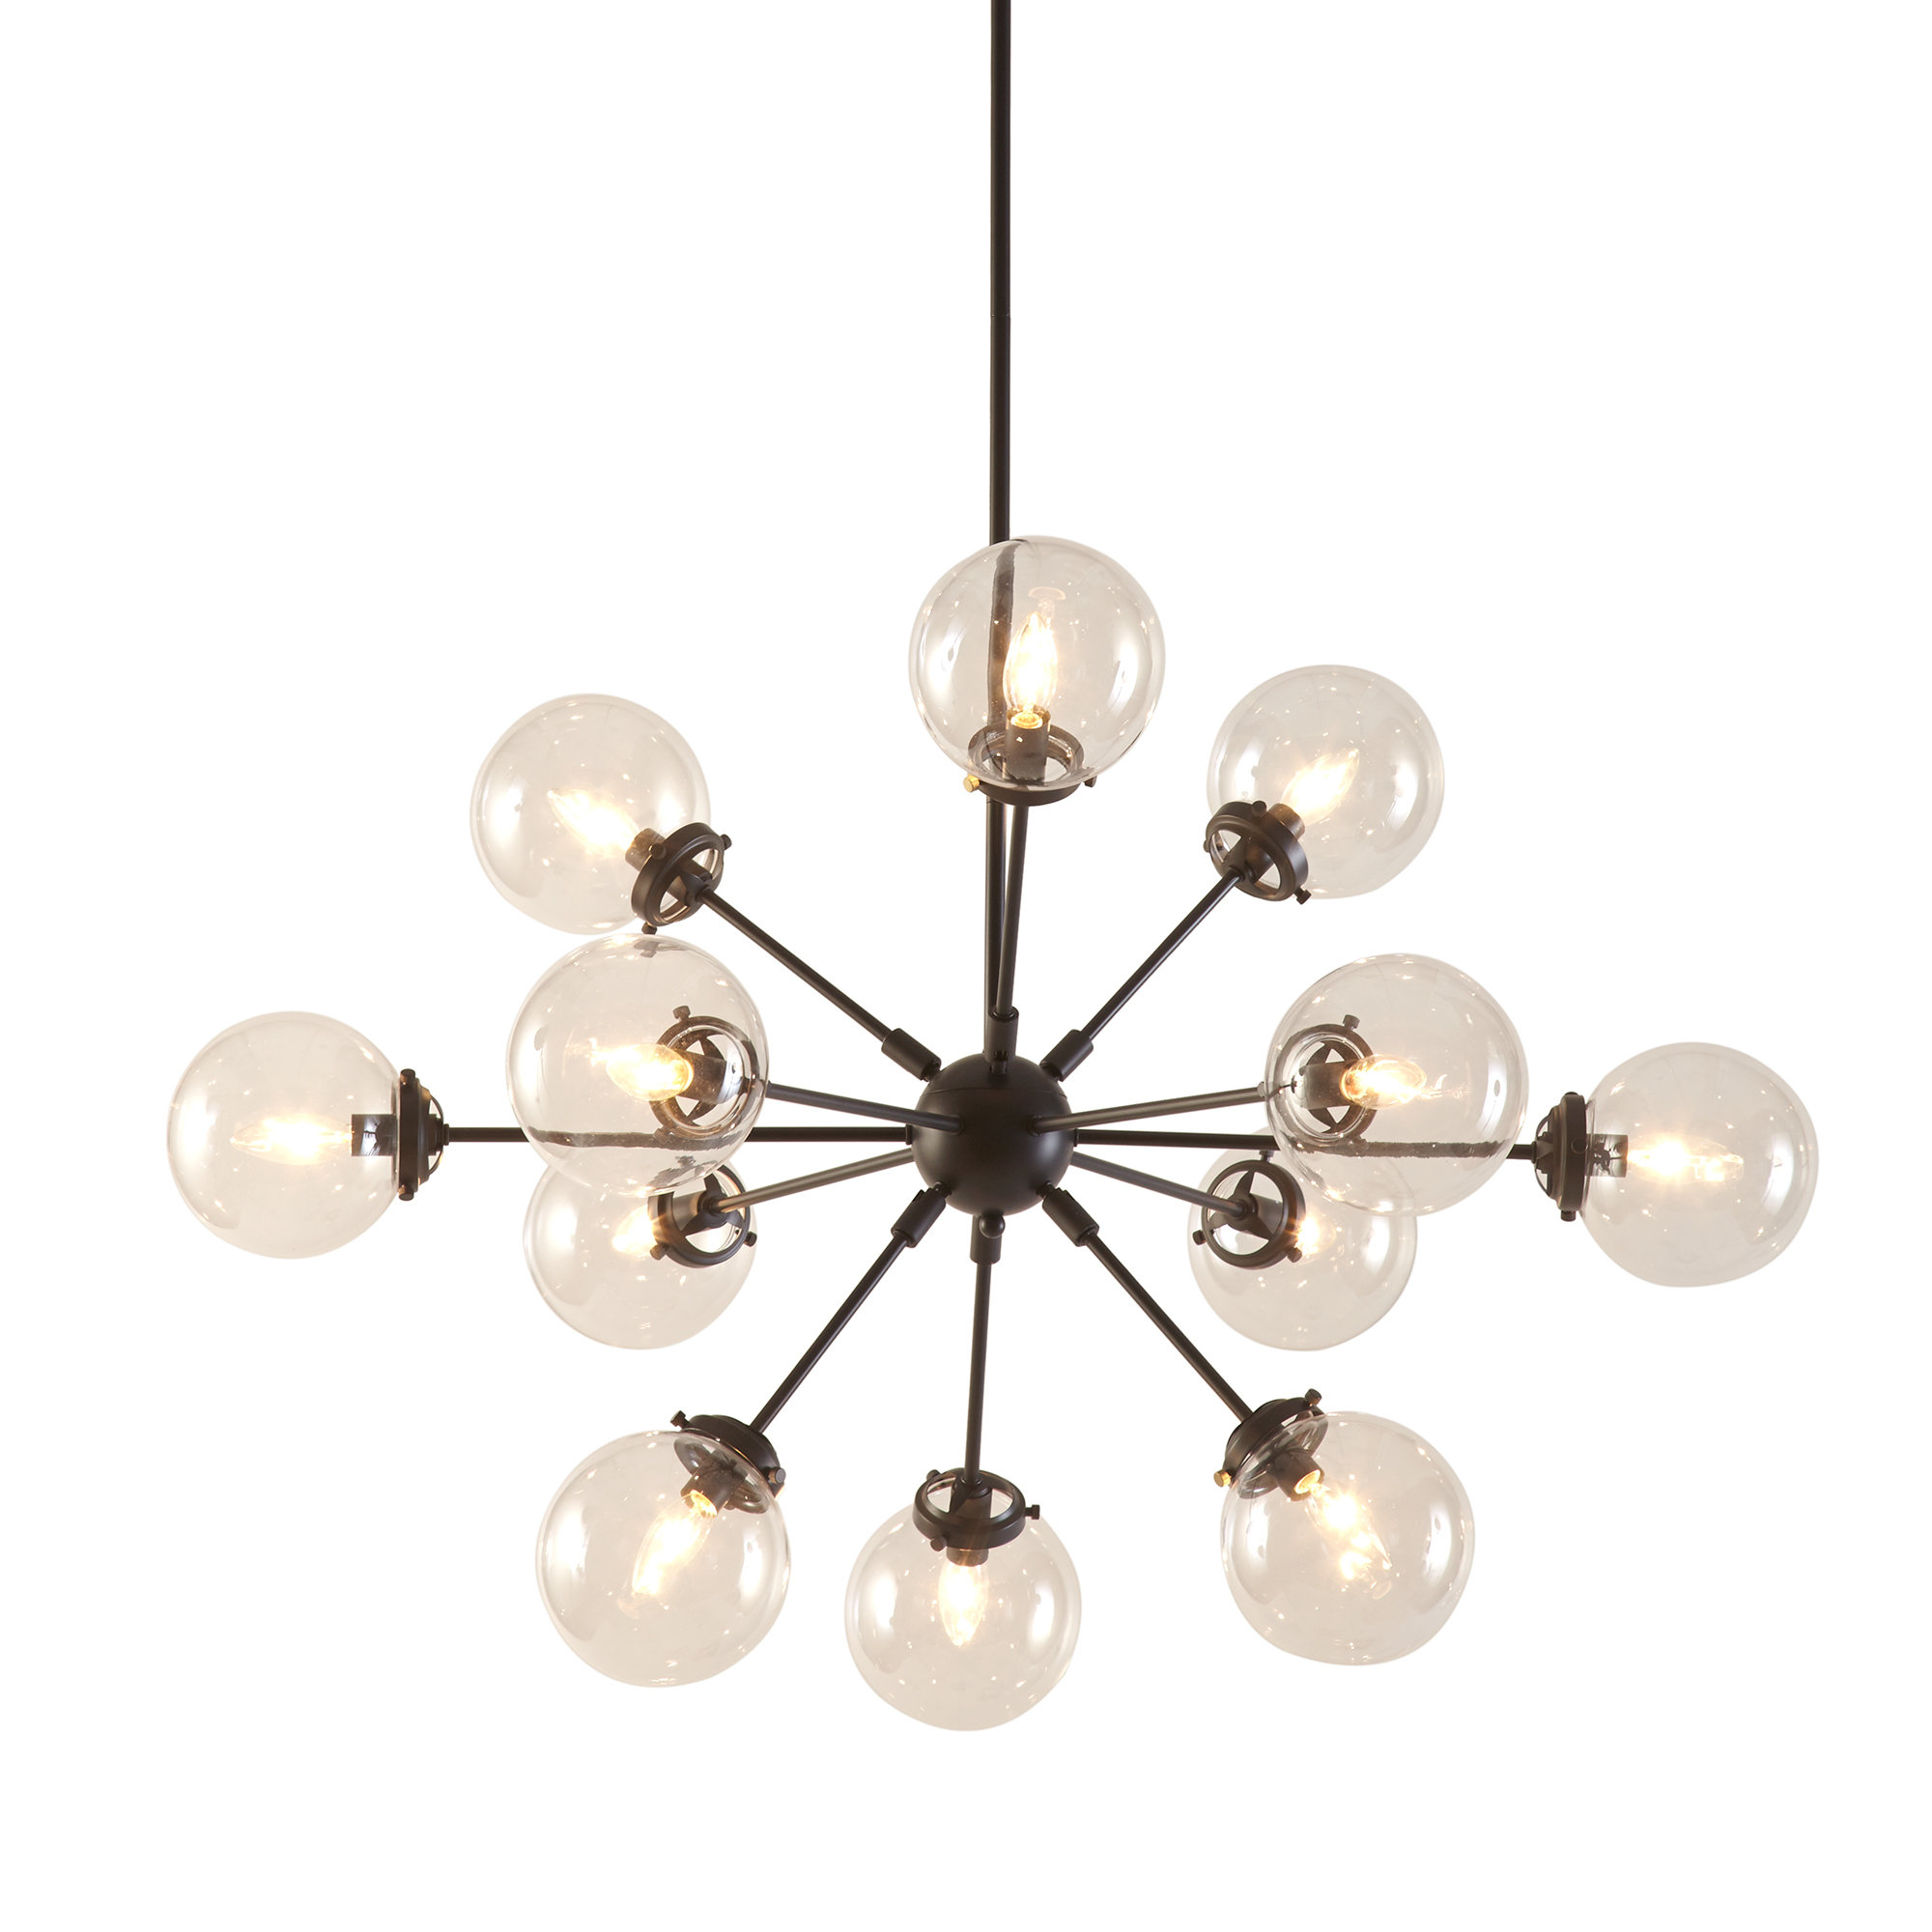 Modern Rustic Interiors Asher 12-Light Sputnik Chandelier pertaining to Asher 12-Light Sputnik Chandeliers (Image 22 of 30)